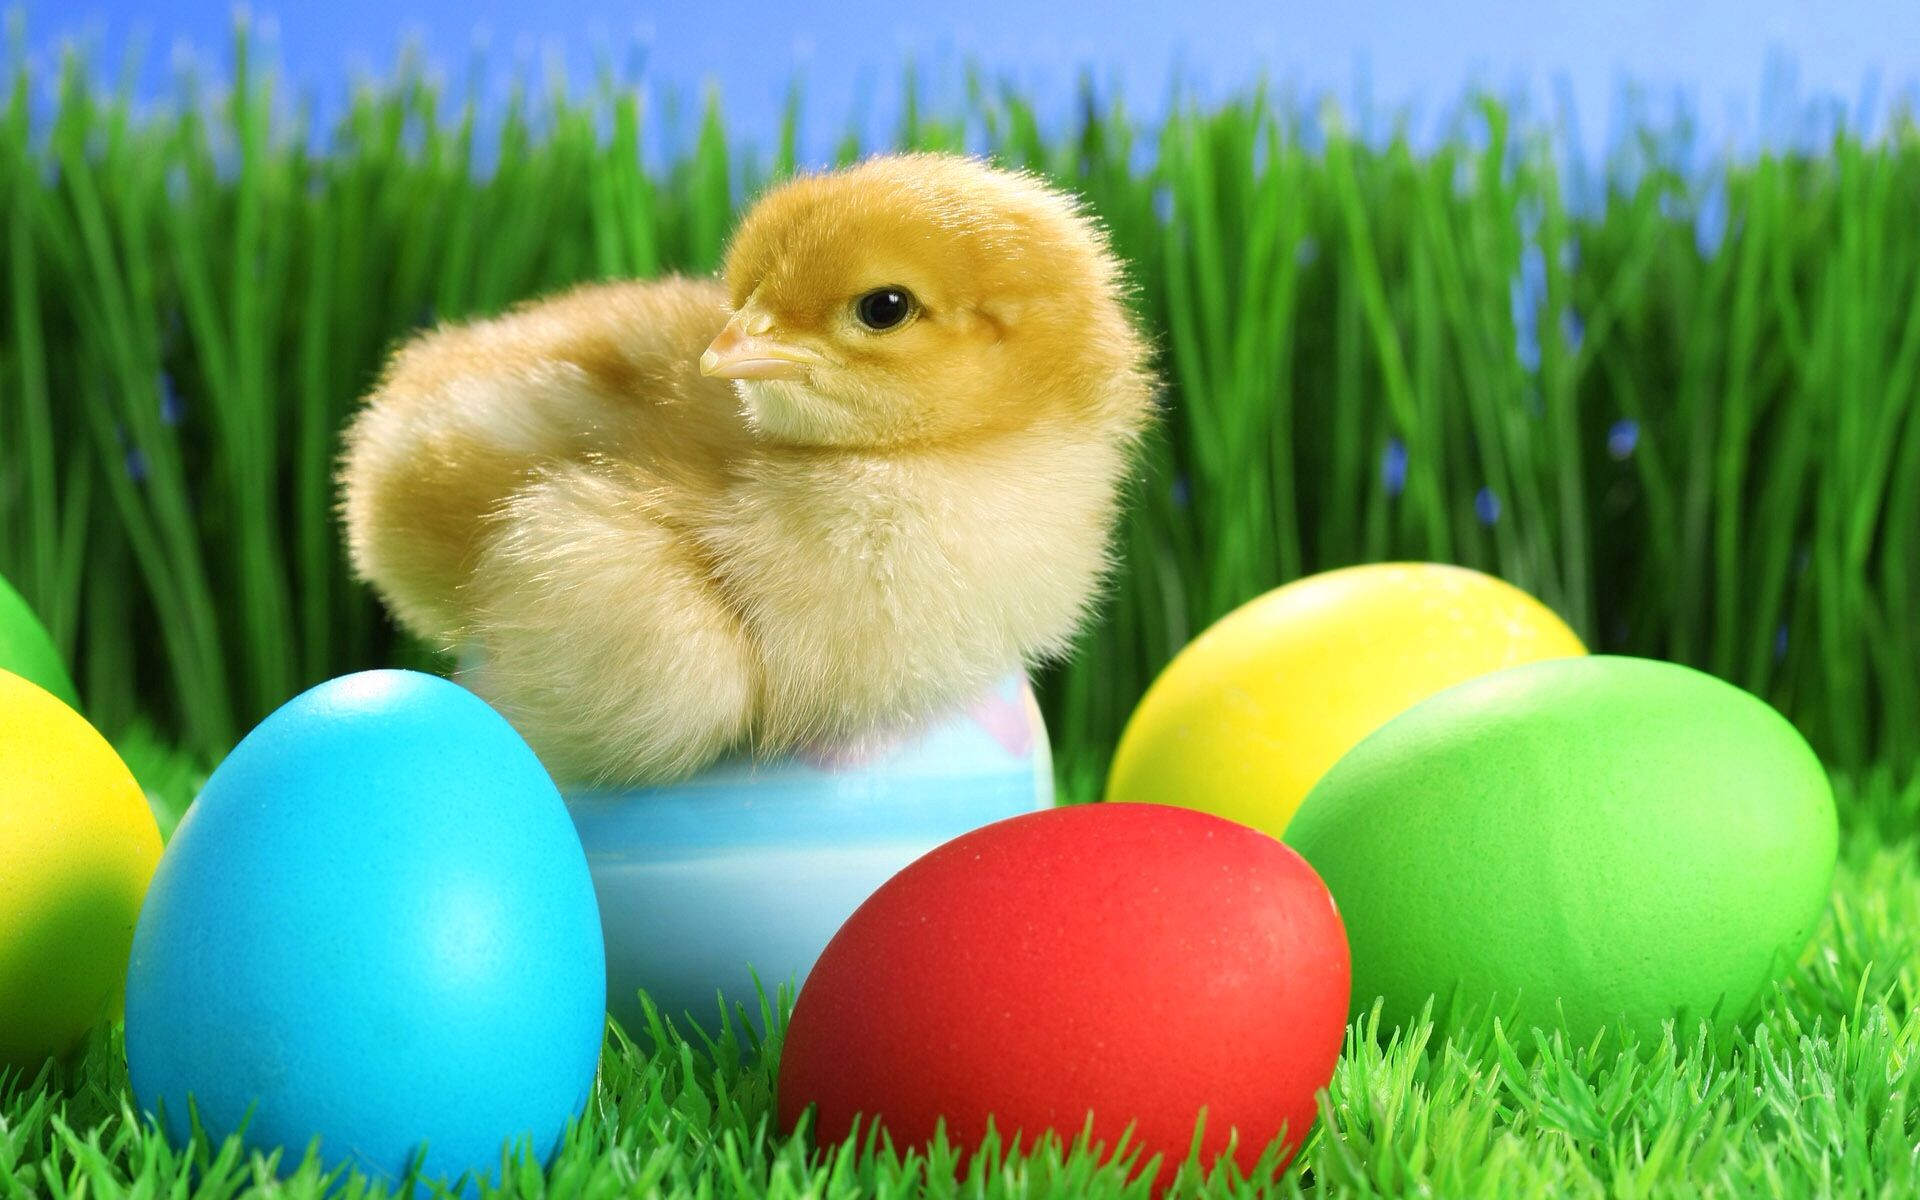 Chick resting on eggs bunny holiday pinterest